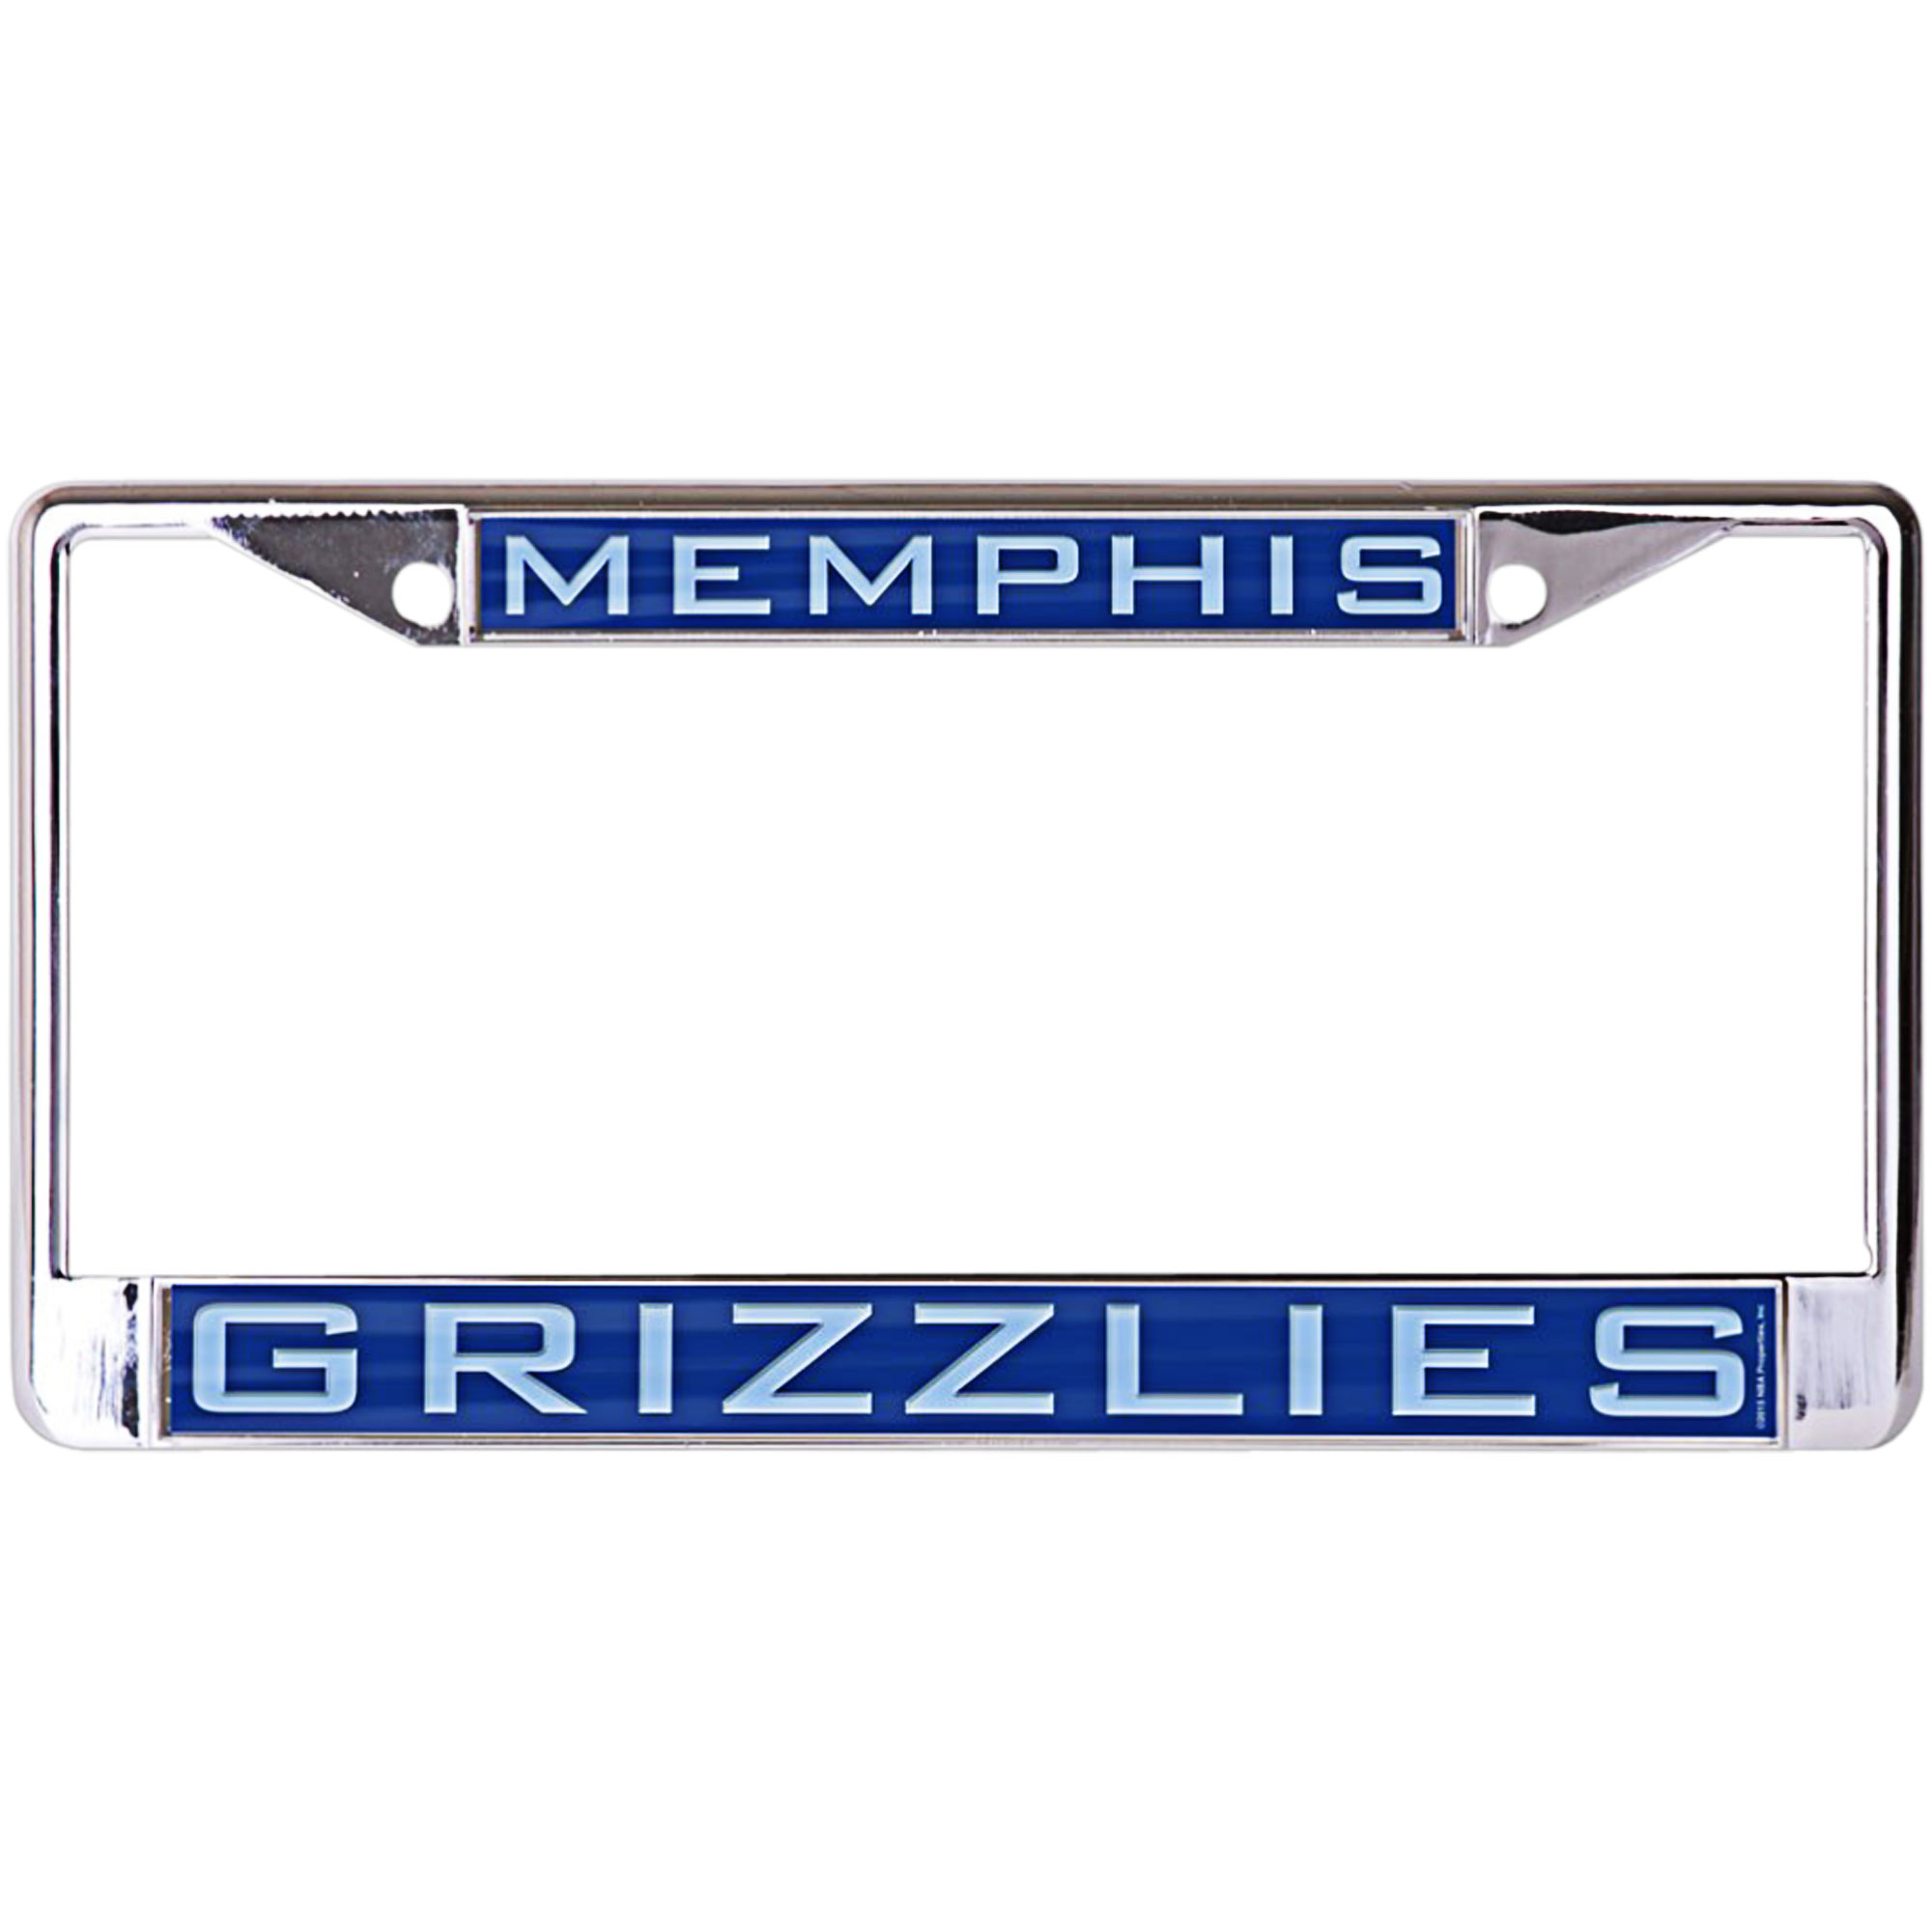 Memphis Grizzlies WinCraft Laser Inlaid Metal License Plate Frame - No Size